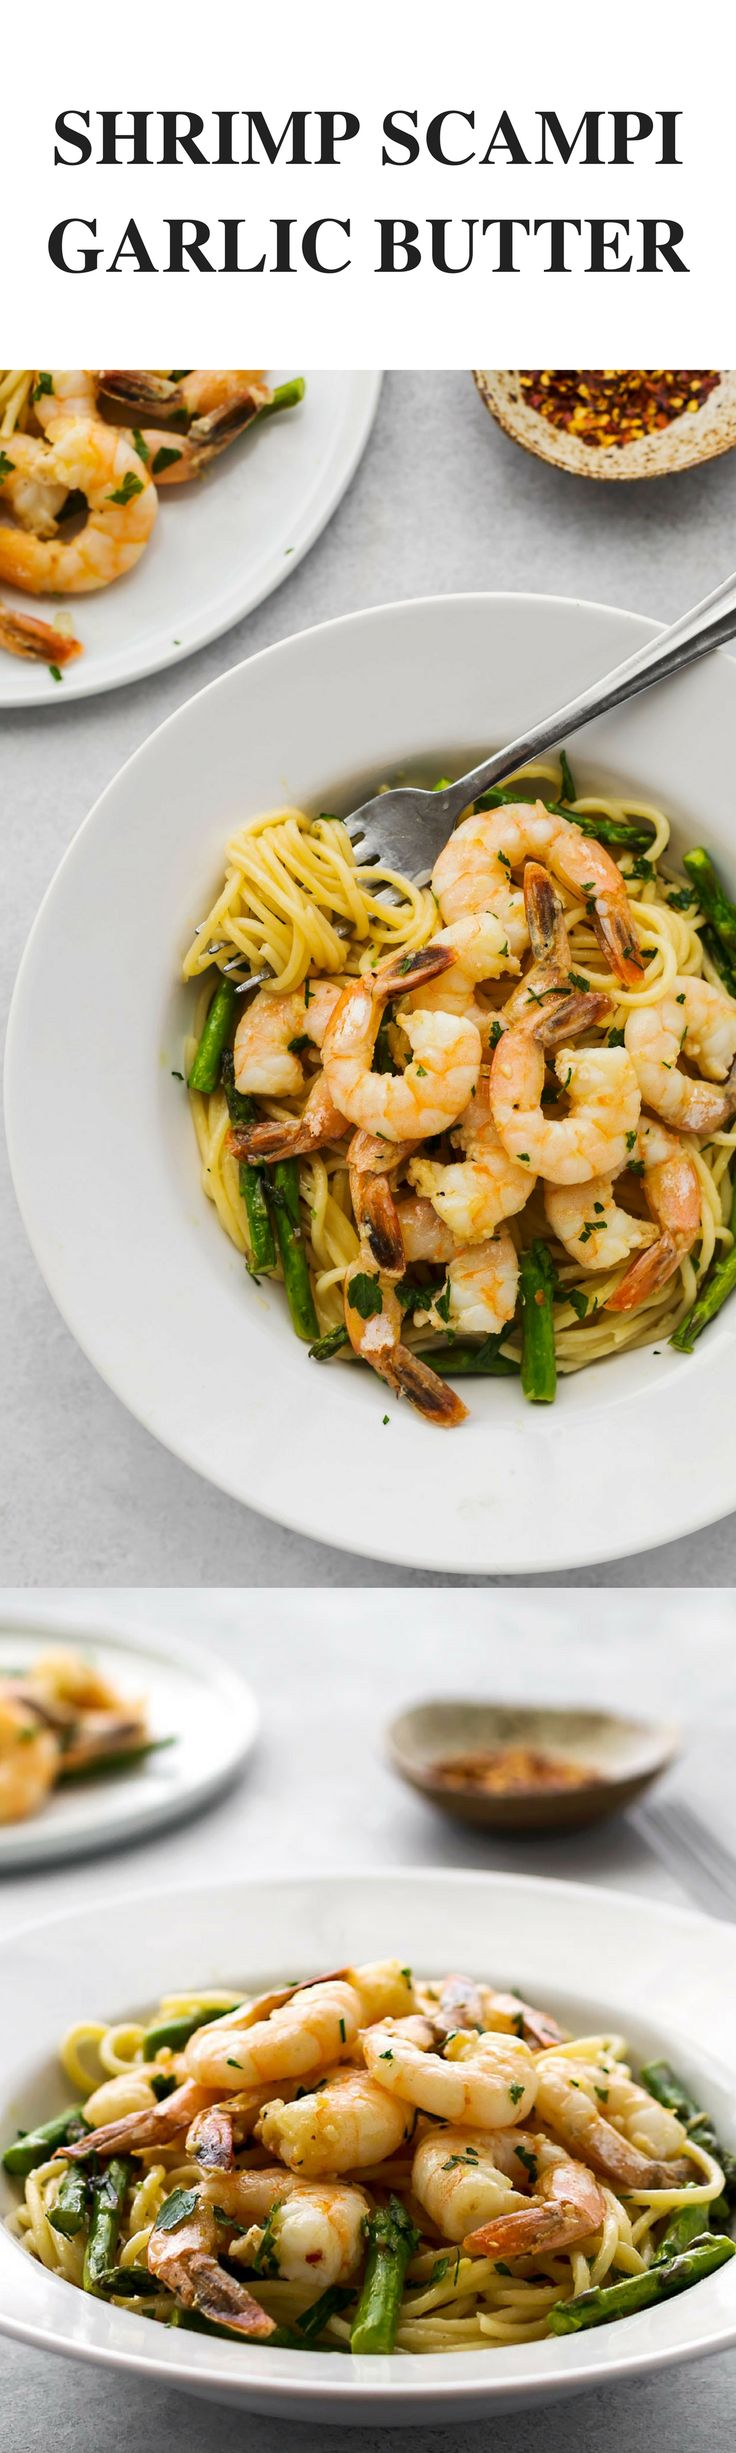 Garlic Butter Shrimp Scampi with pasta and asparagus recipe! If you are looking for easy recipes or tasty Italian pasta recipes, this Shrimp Scampi recipe is for you #StoredBrilliantly #ad